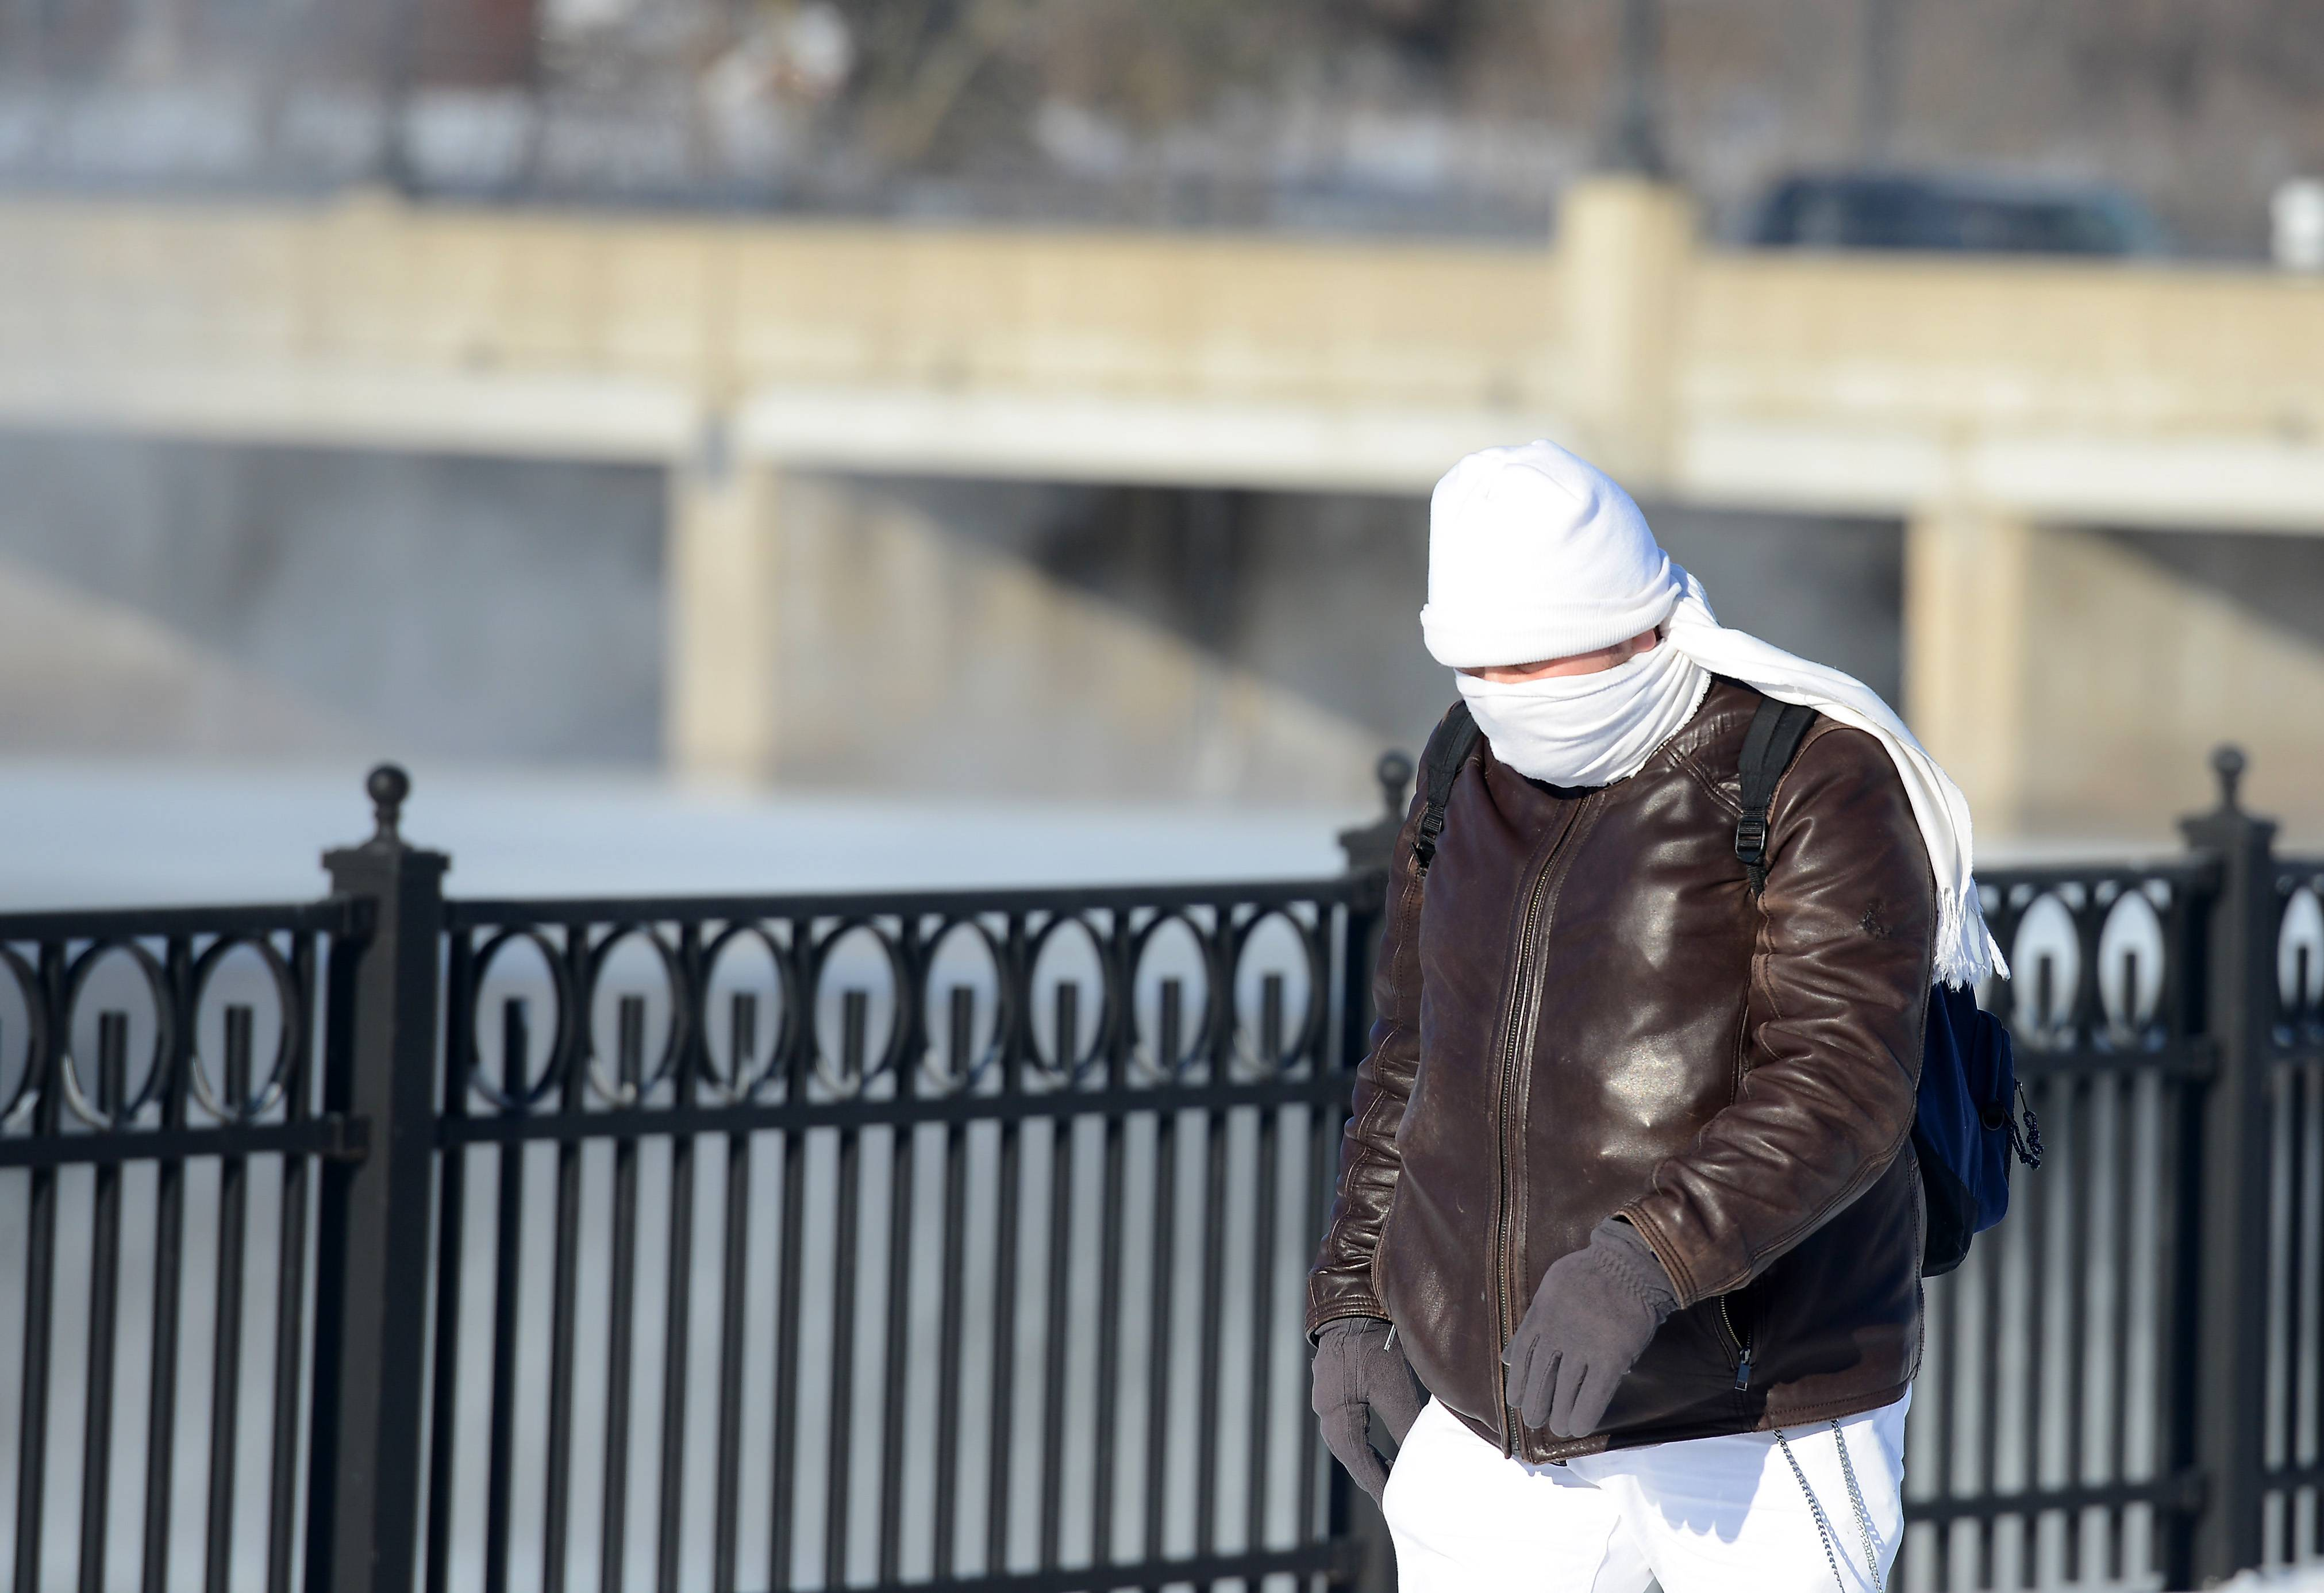 Isaac Frusti of Elgin tries to stay warm Tuesday as he walks to catch a bus in downtown Elgin. Morning low temperatures were below zero around the Fox Valley.